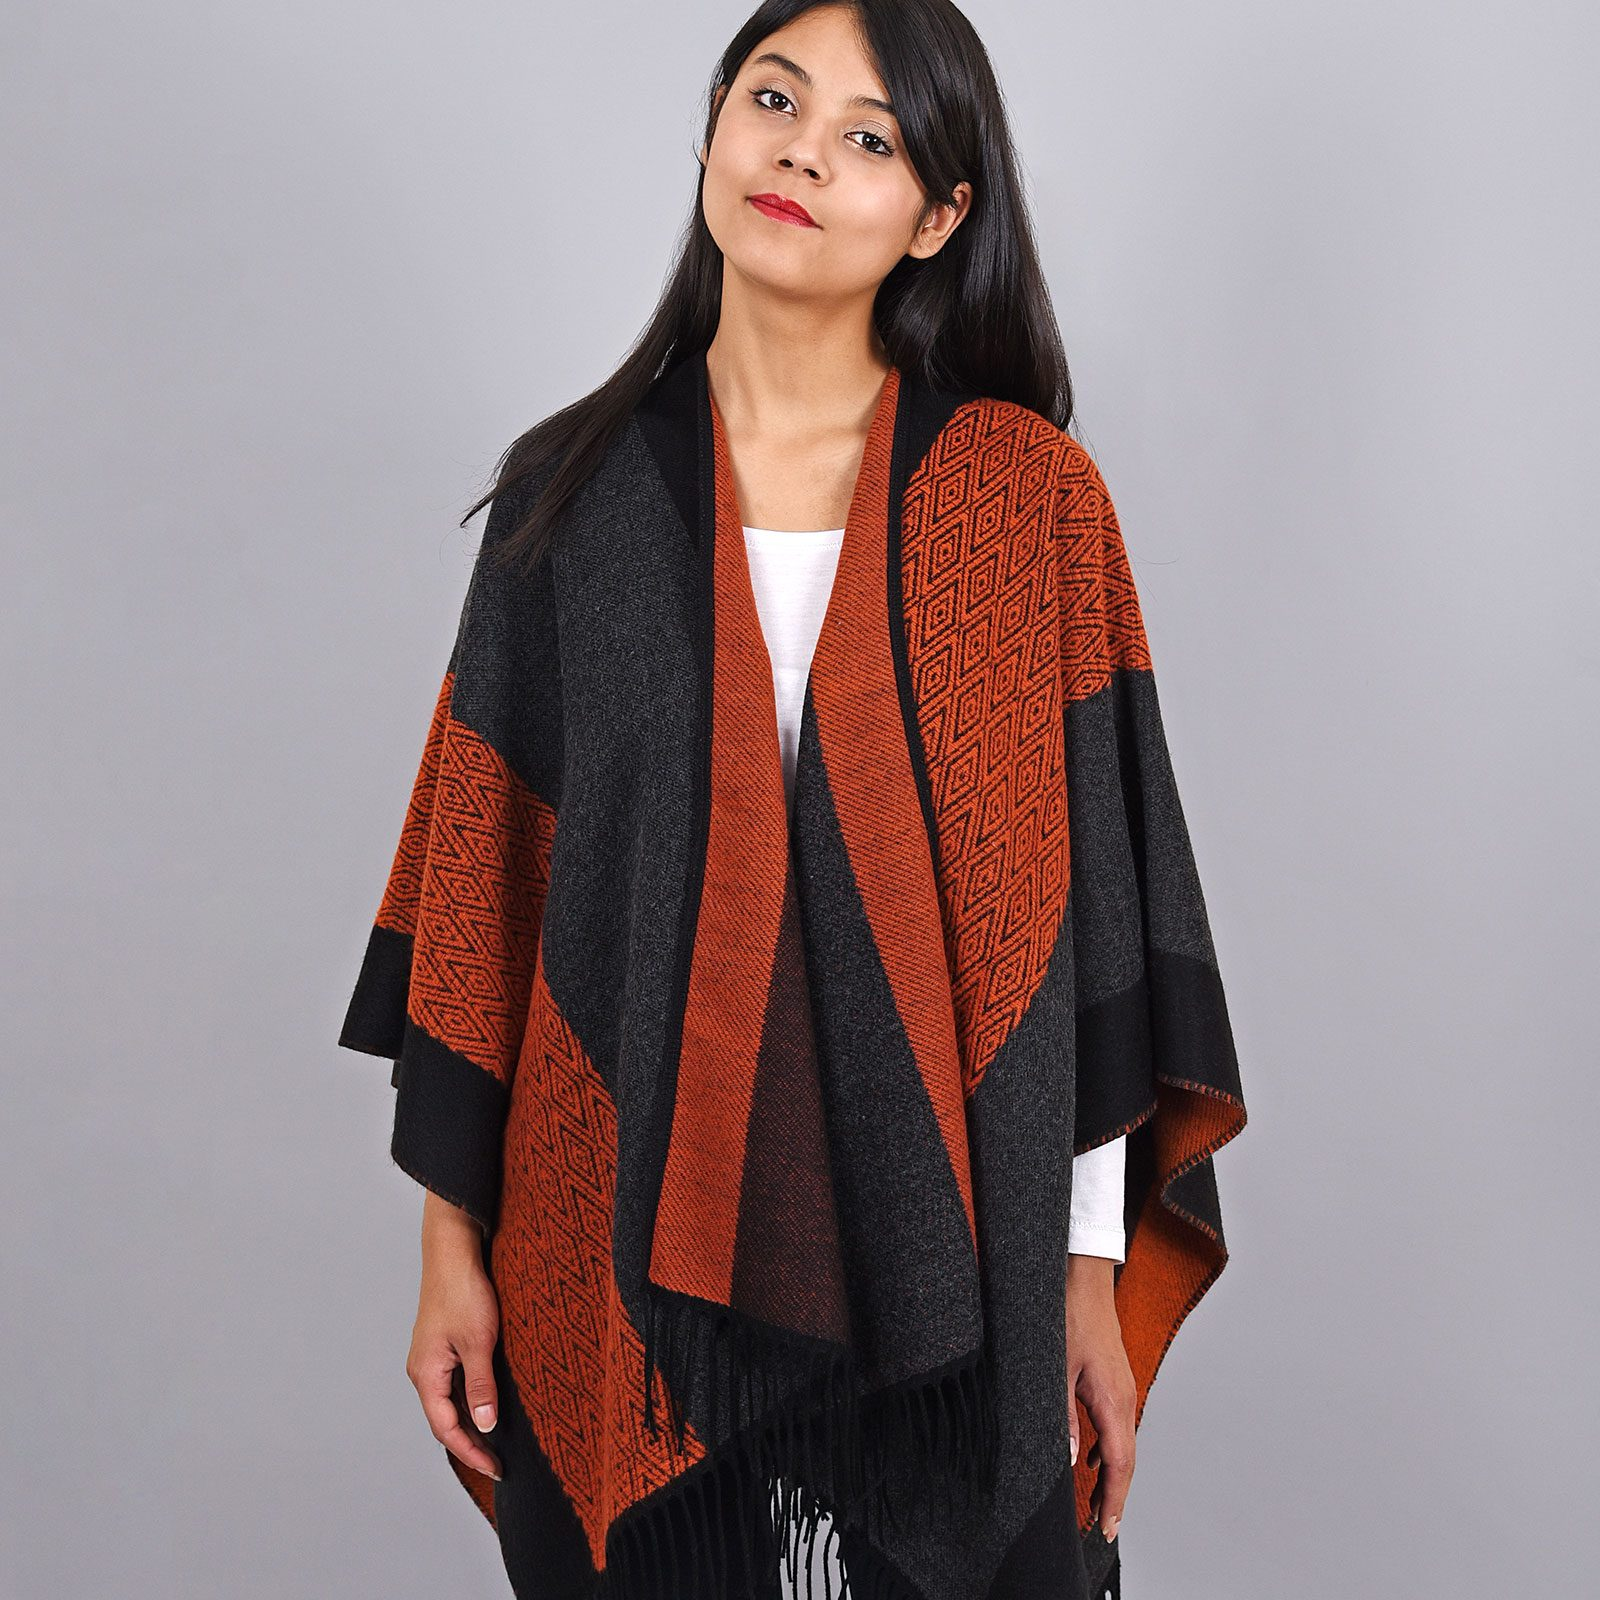 http://lookbook.allee-du-foulard.fr/wp-content/uploads/2019/01/AT-03964-VF16-poncho-femme-rouge-noir-1600x1600.jpg